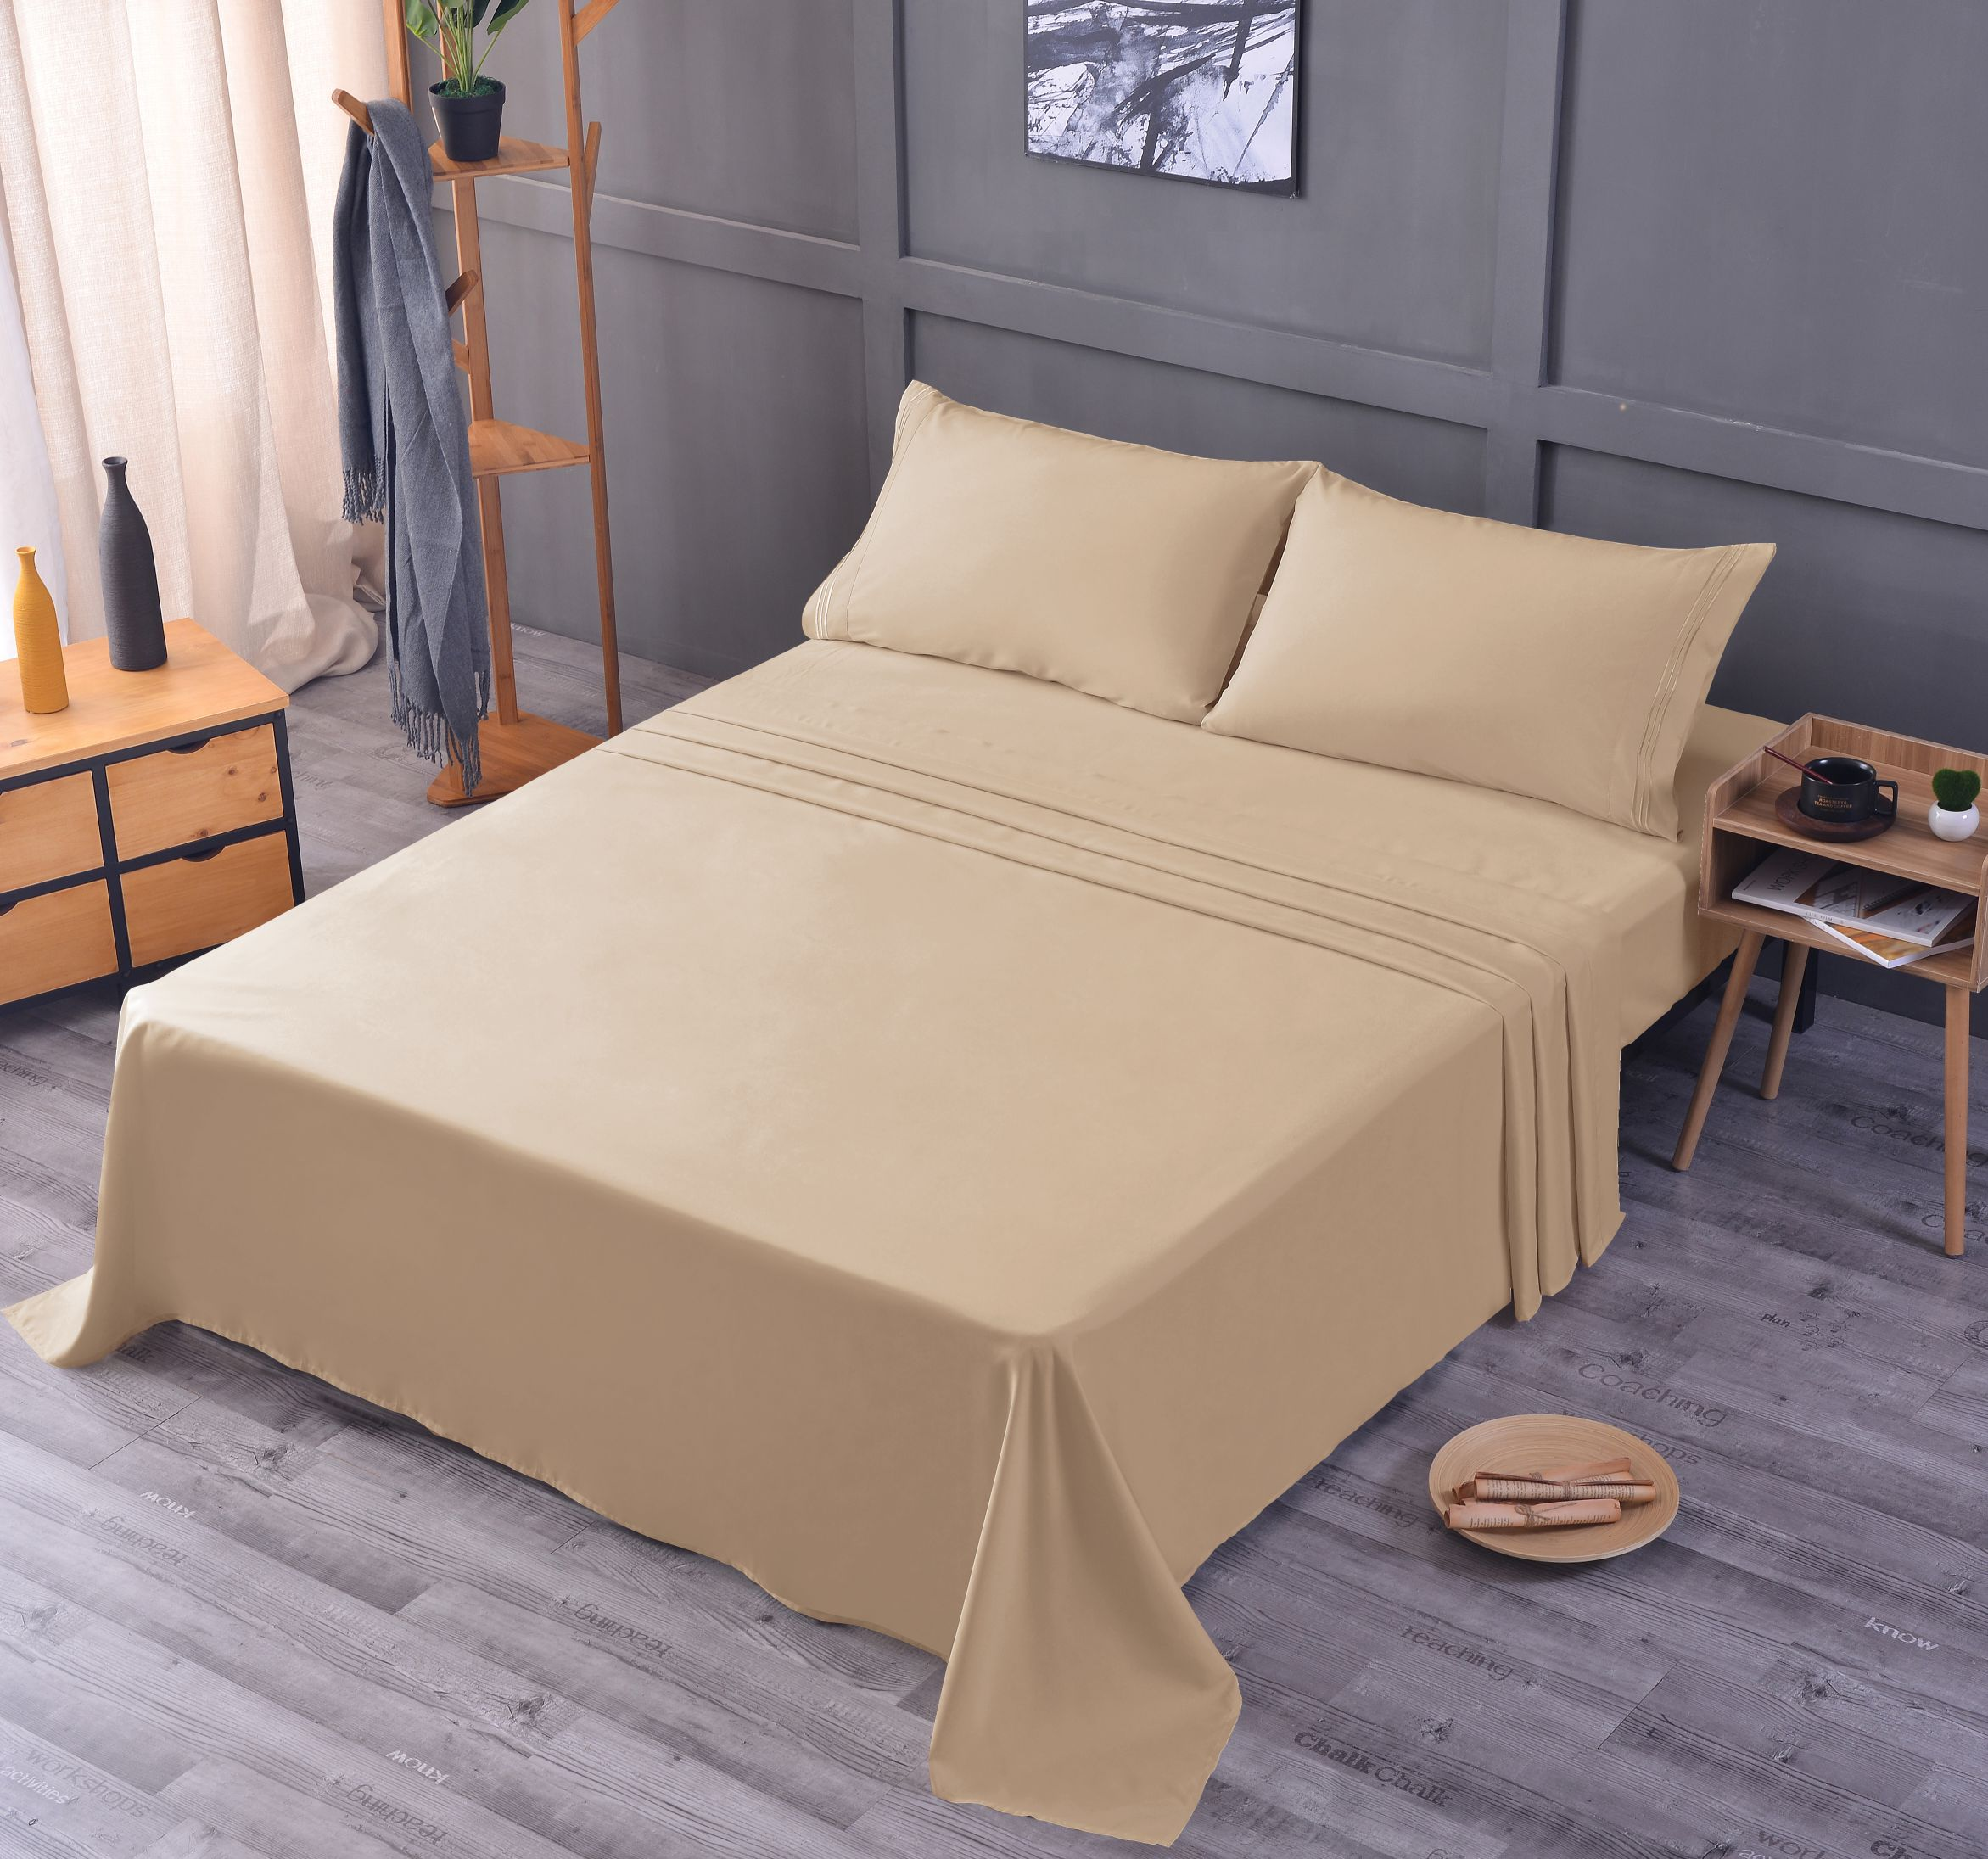 Cool Bamboo Bed Sheet Sets Cool Bamboo Pillow Easter Gift